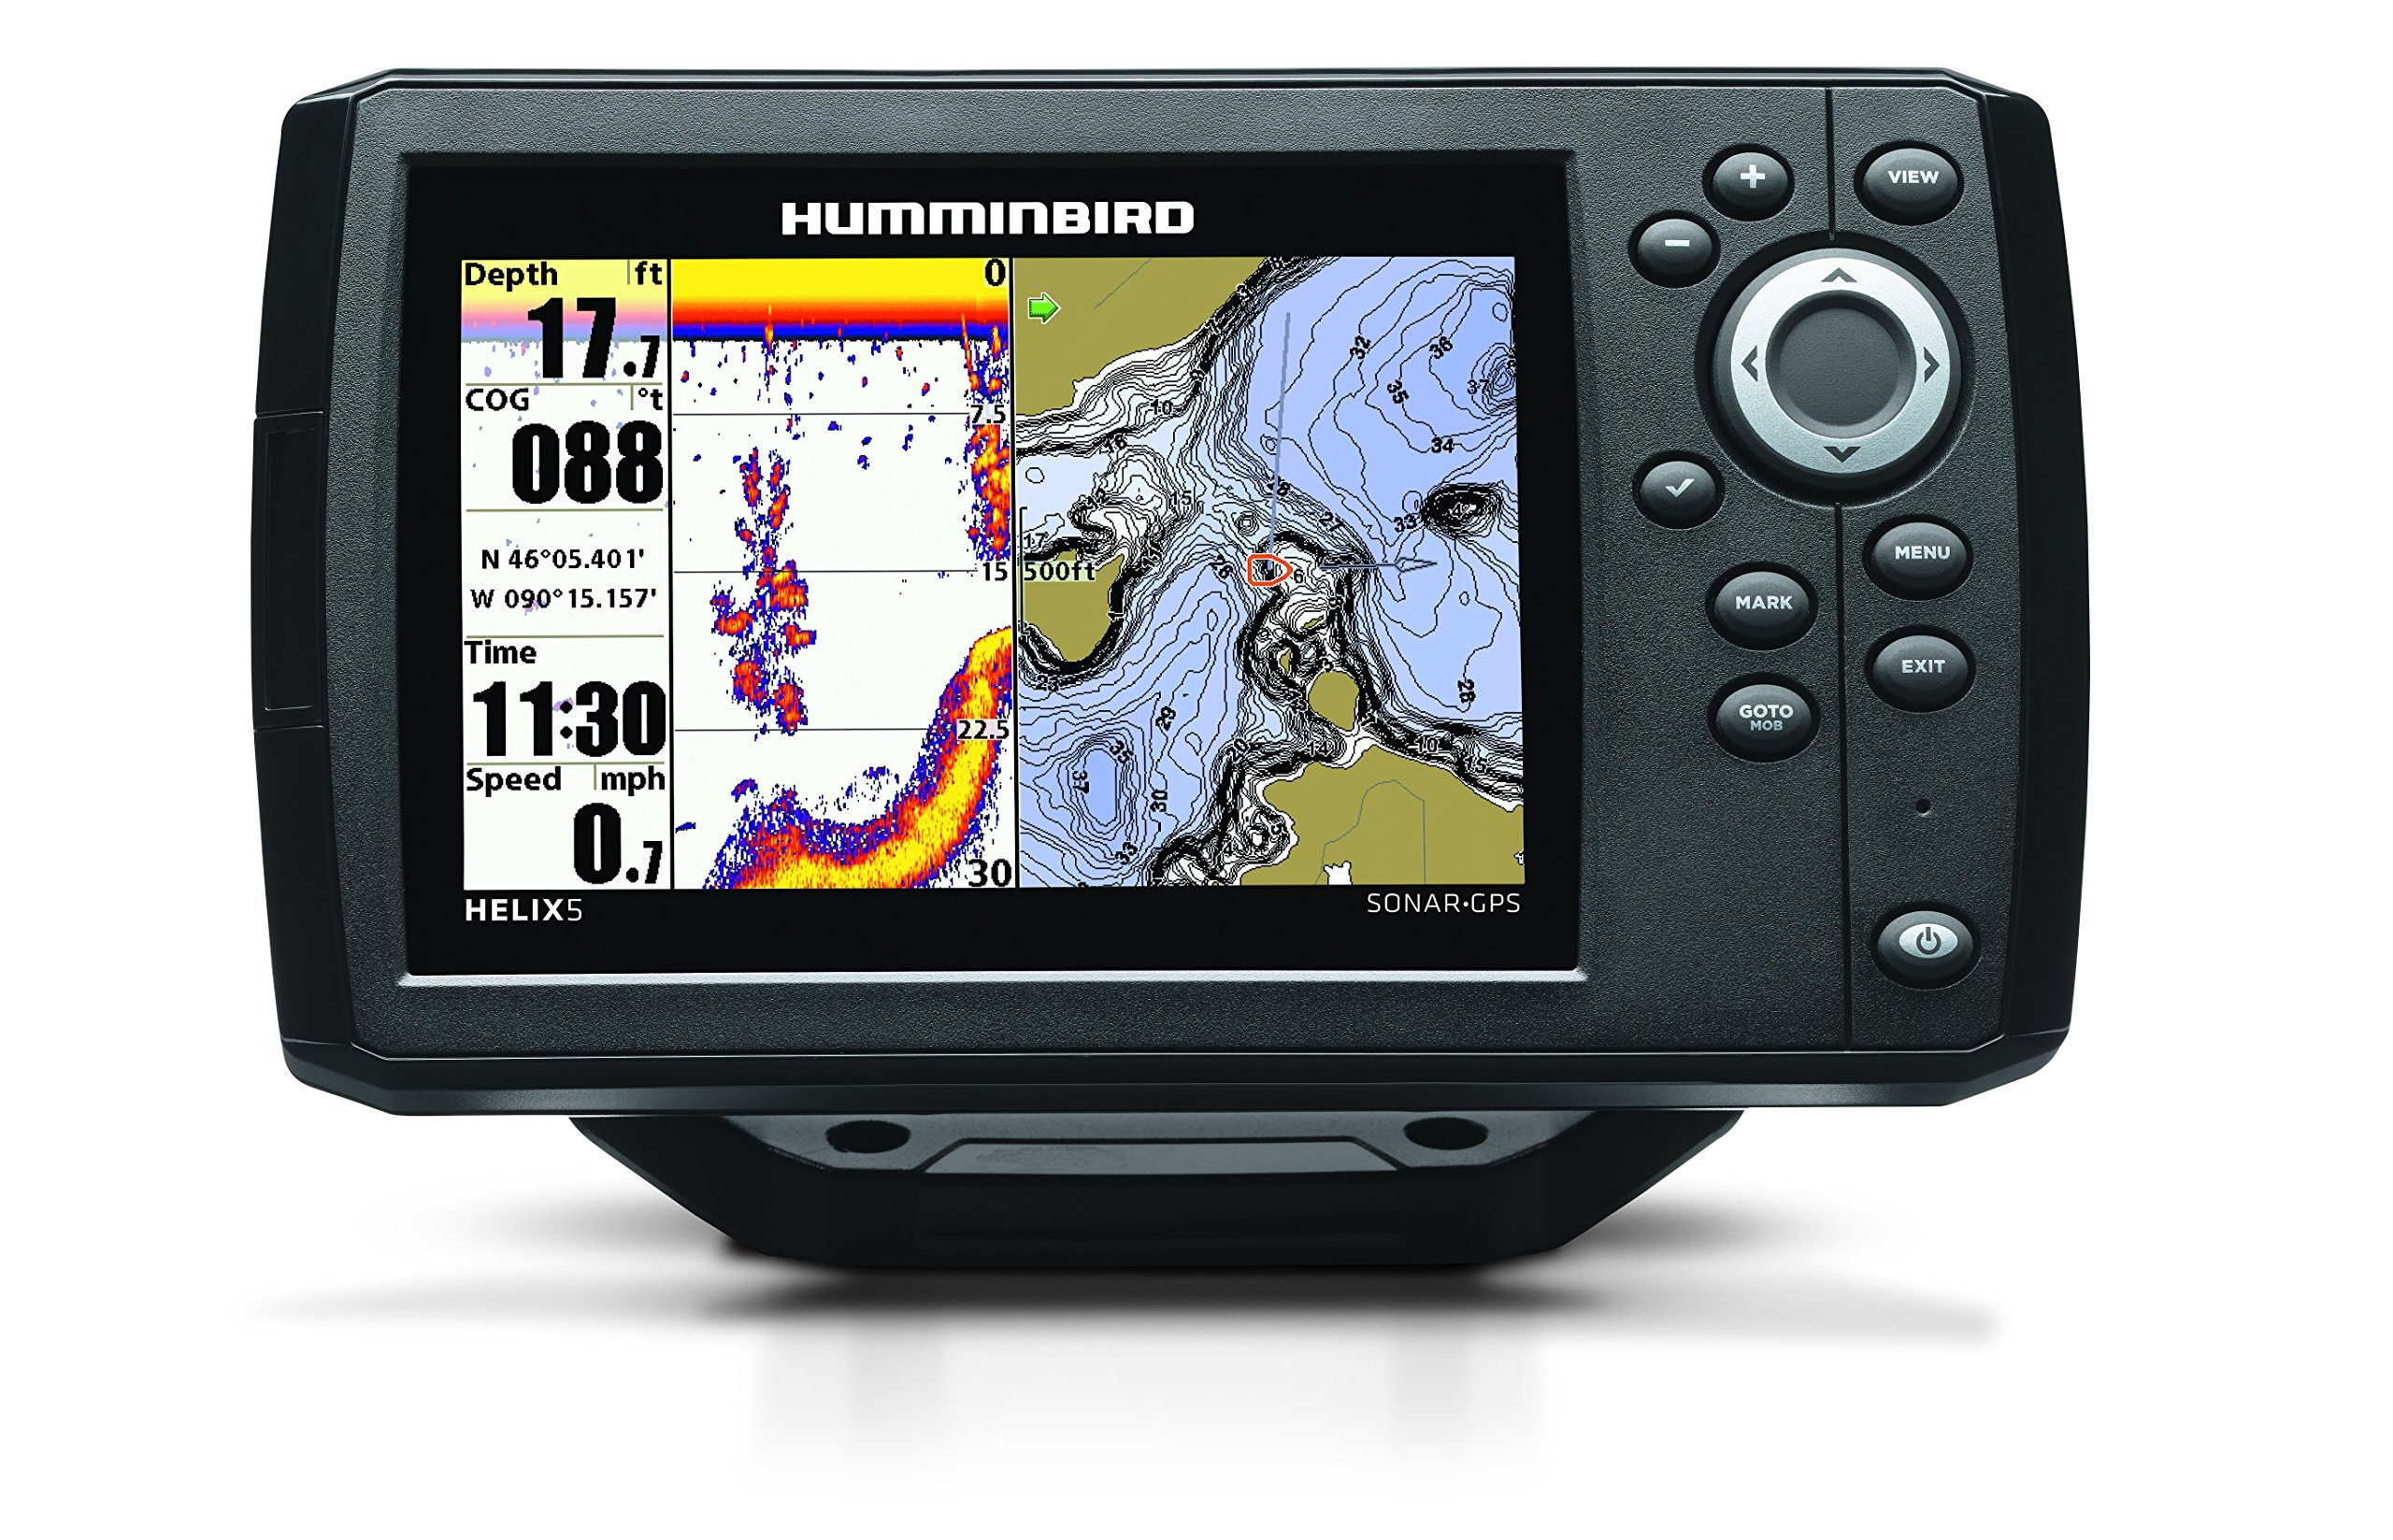 Humminbird 409610-1 Helix 5 Fish Finder with GPS by Humminbird